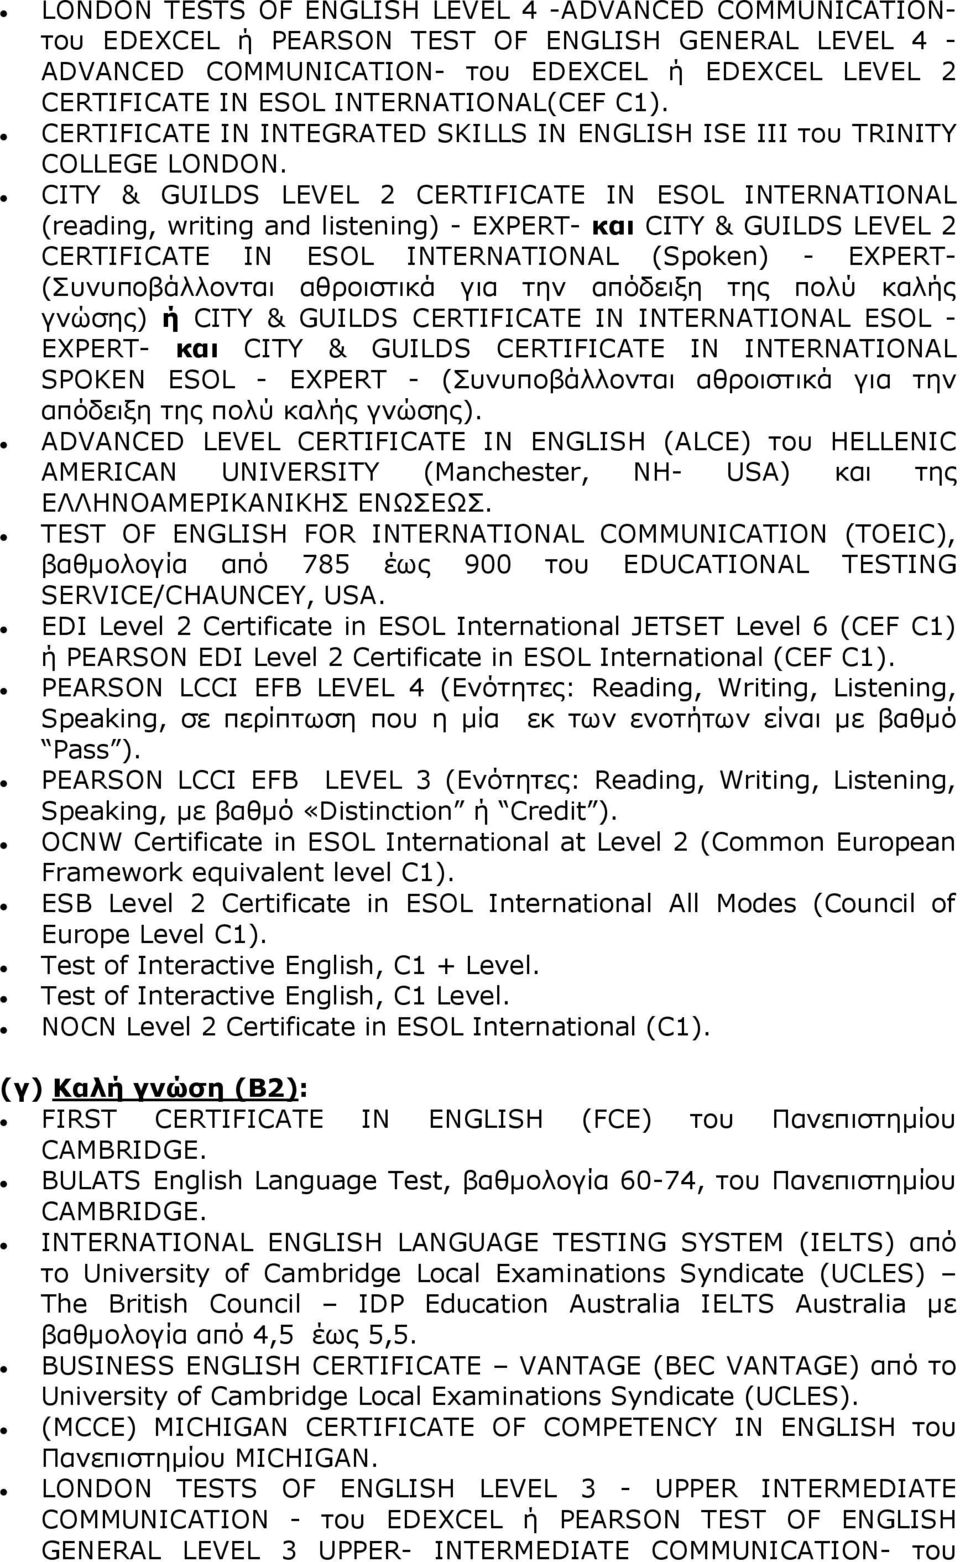 CITY & GUILDS LEVEL 2 CERTIFICATE IN ESOL INTERNATIONAL (reading, writing and listening) - EXPERT- και CITY & GUILDS LEVEL 2 CERTIFICATE IN ESOL INTERNATIONAL (Spoken) - EXPERT- (Συνυποβάλλονται